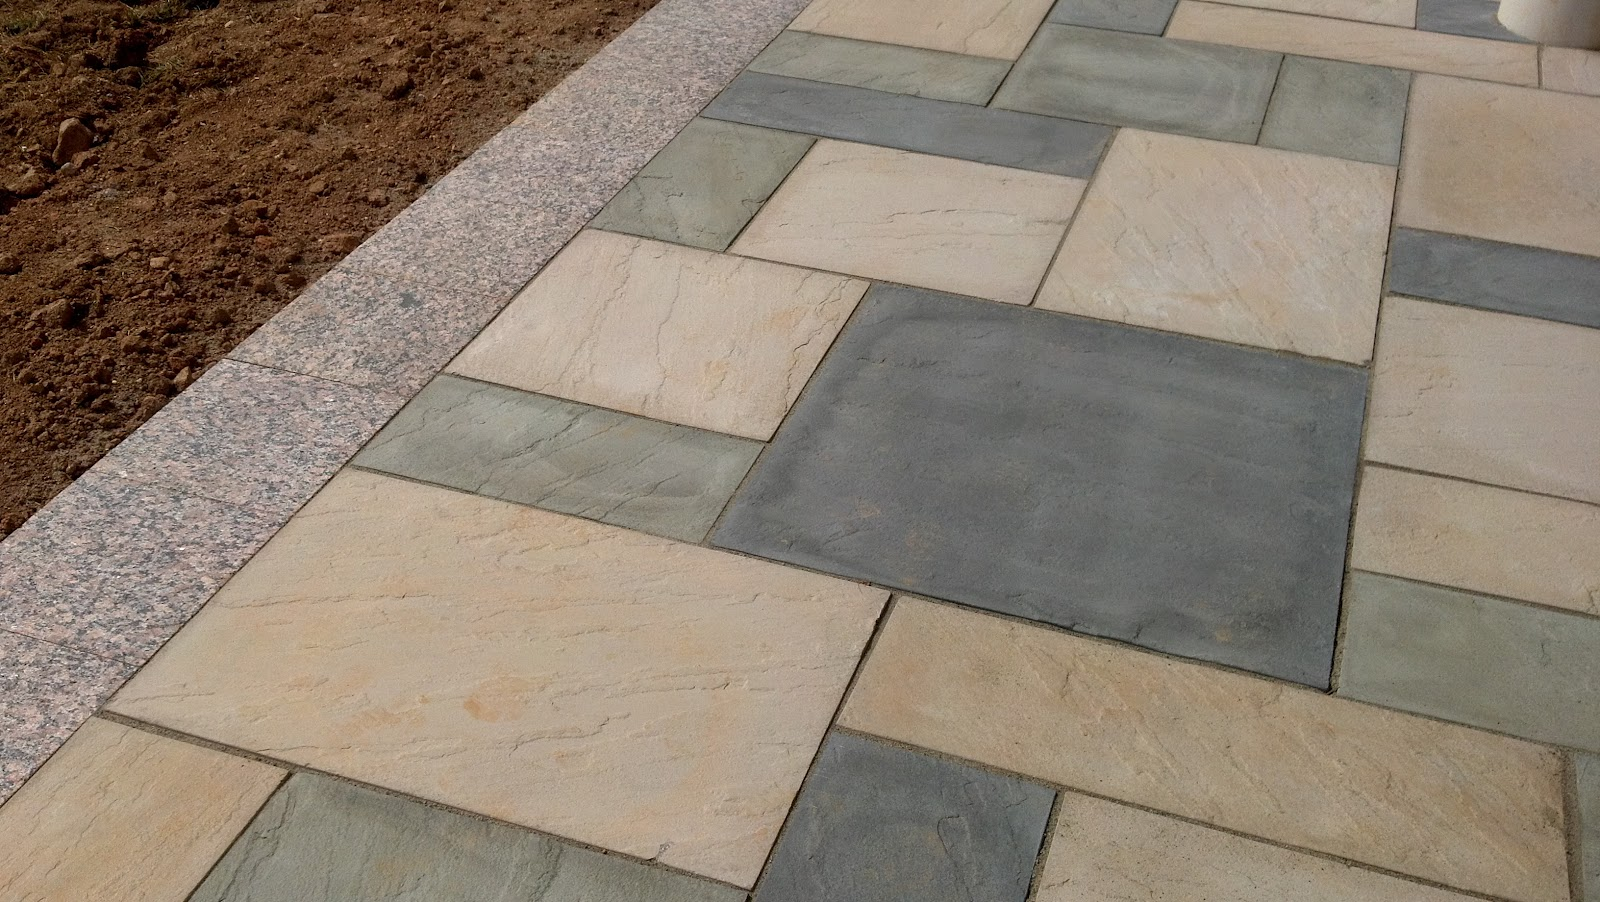 Life time pavers product techo bloc aberdeen paver for Techo bloc